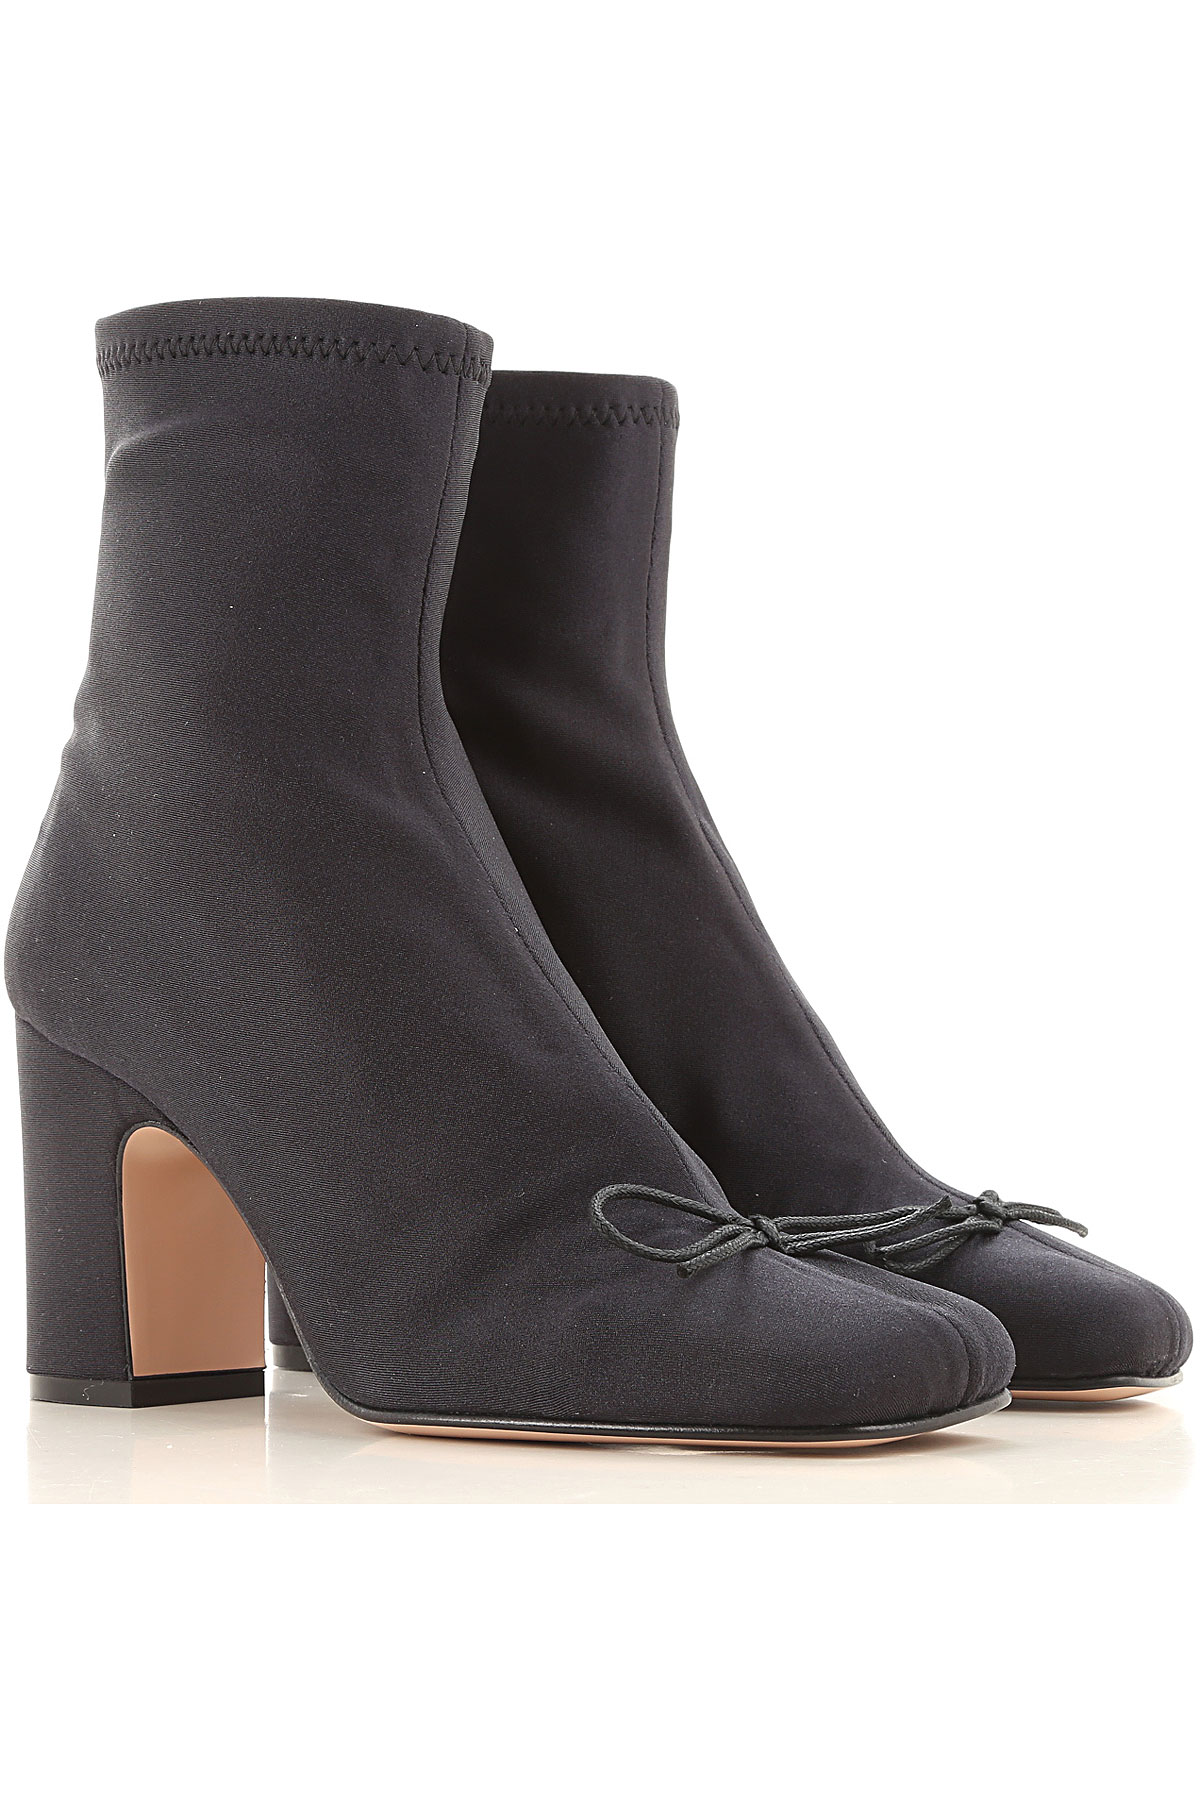 RED Valentino Boots for Women, Booties On Sale, Black, Stretch Fabric, 2019, 10 6 7 8 9 9